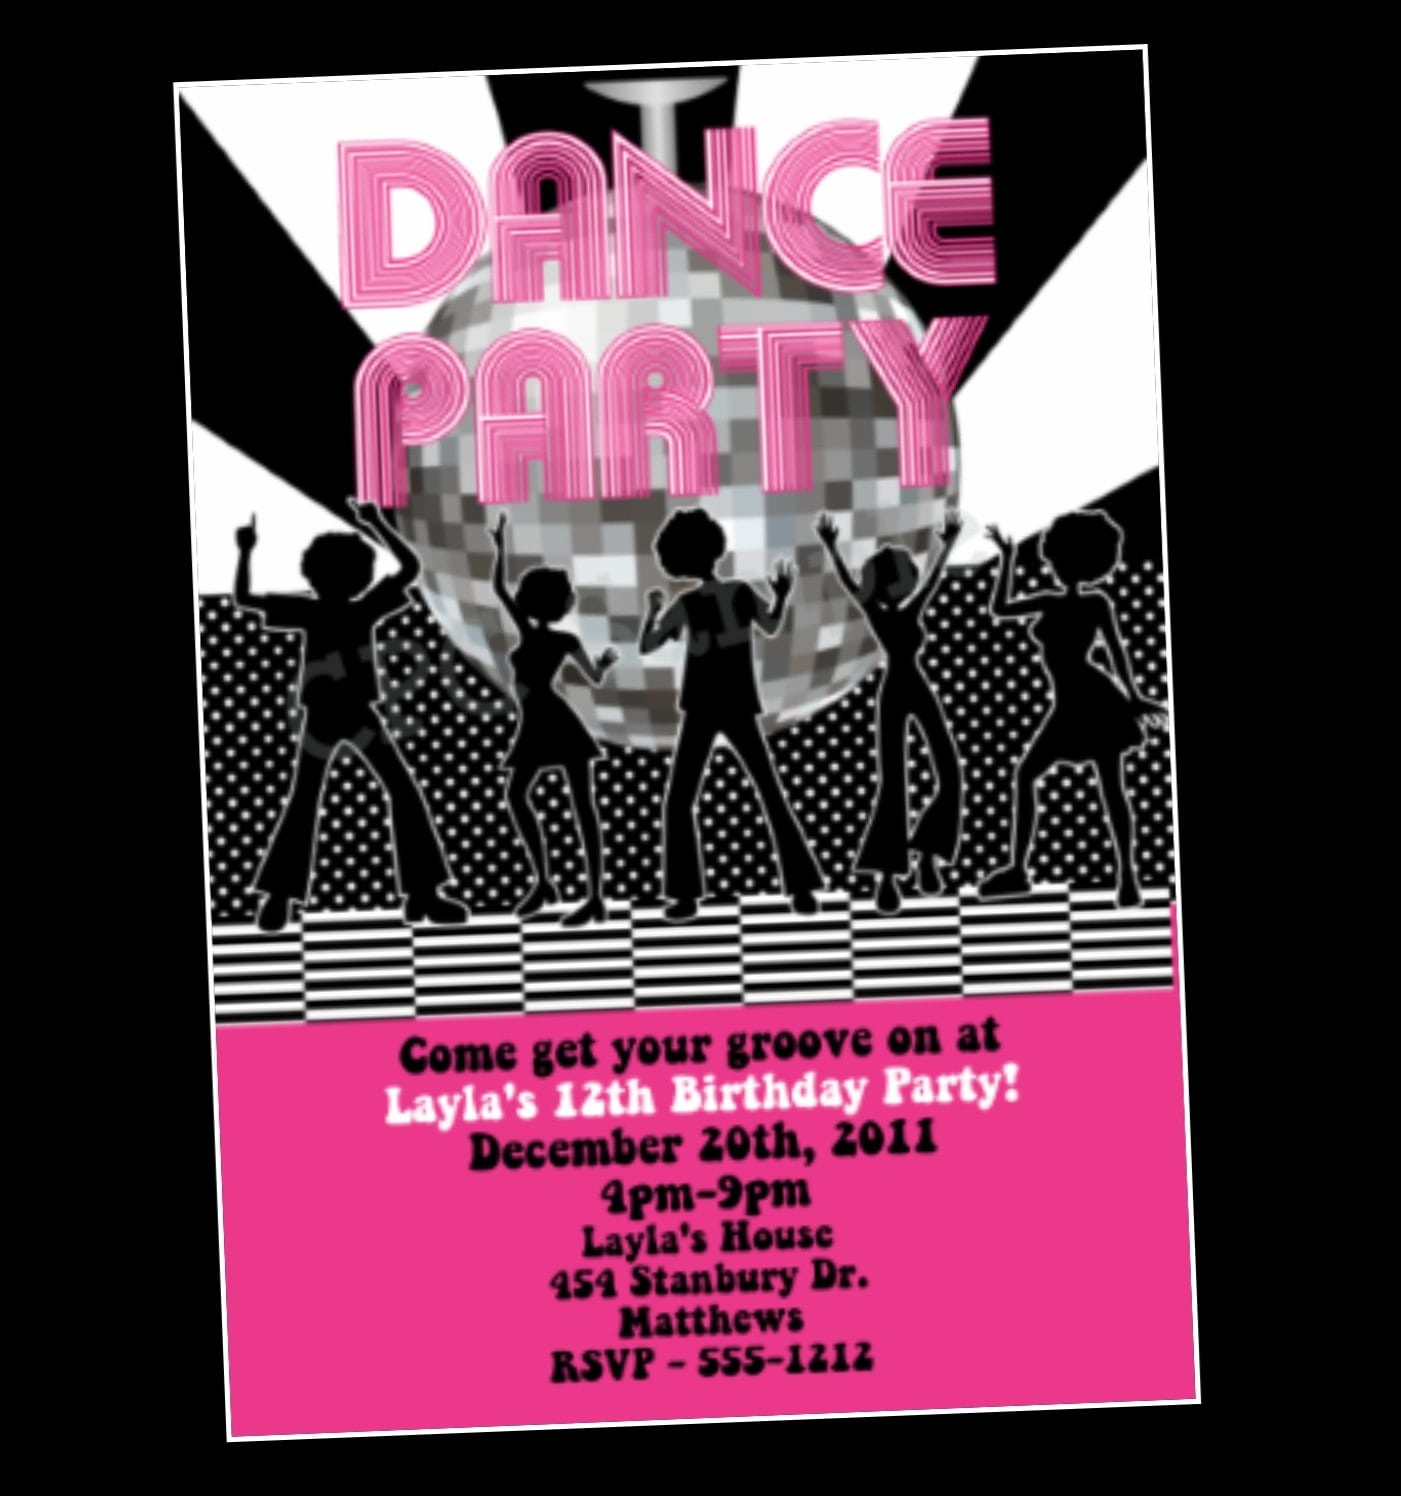 Discobirthdaypartyinvitationtemplatefreejpg - Disco party invites templates free